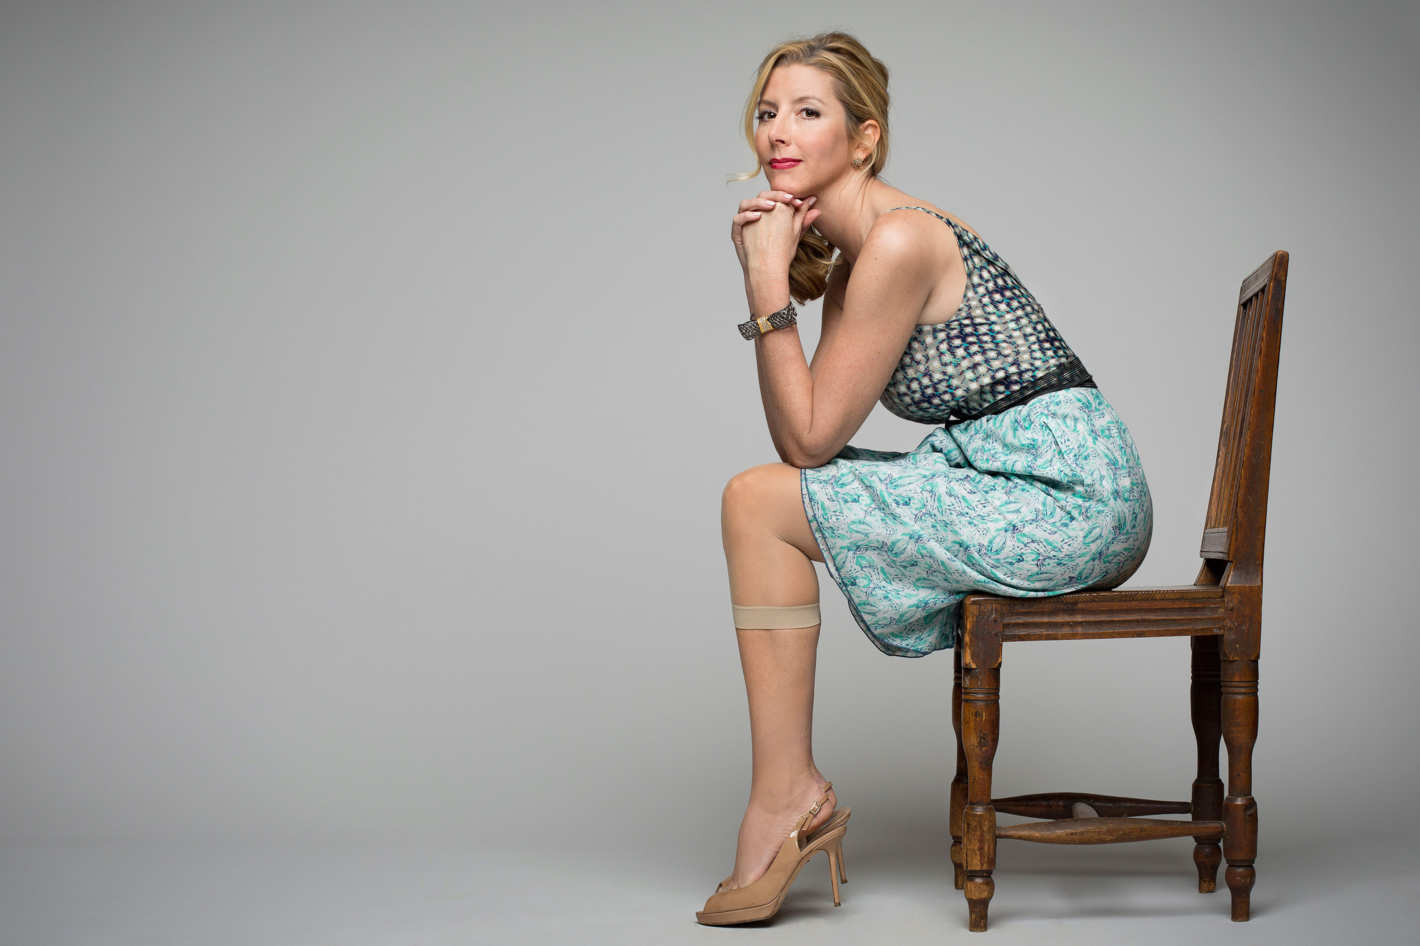 Sara Blakely Talks about How to Get a Billion Dollar Idea on The James Altucher Show